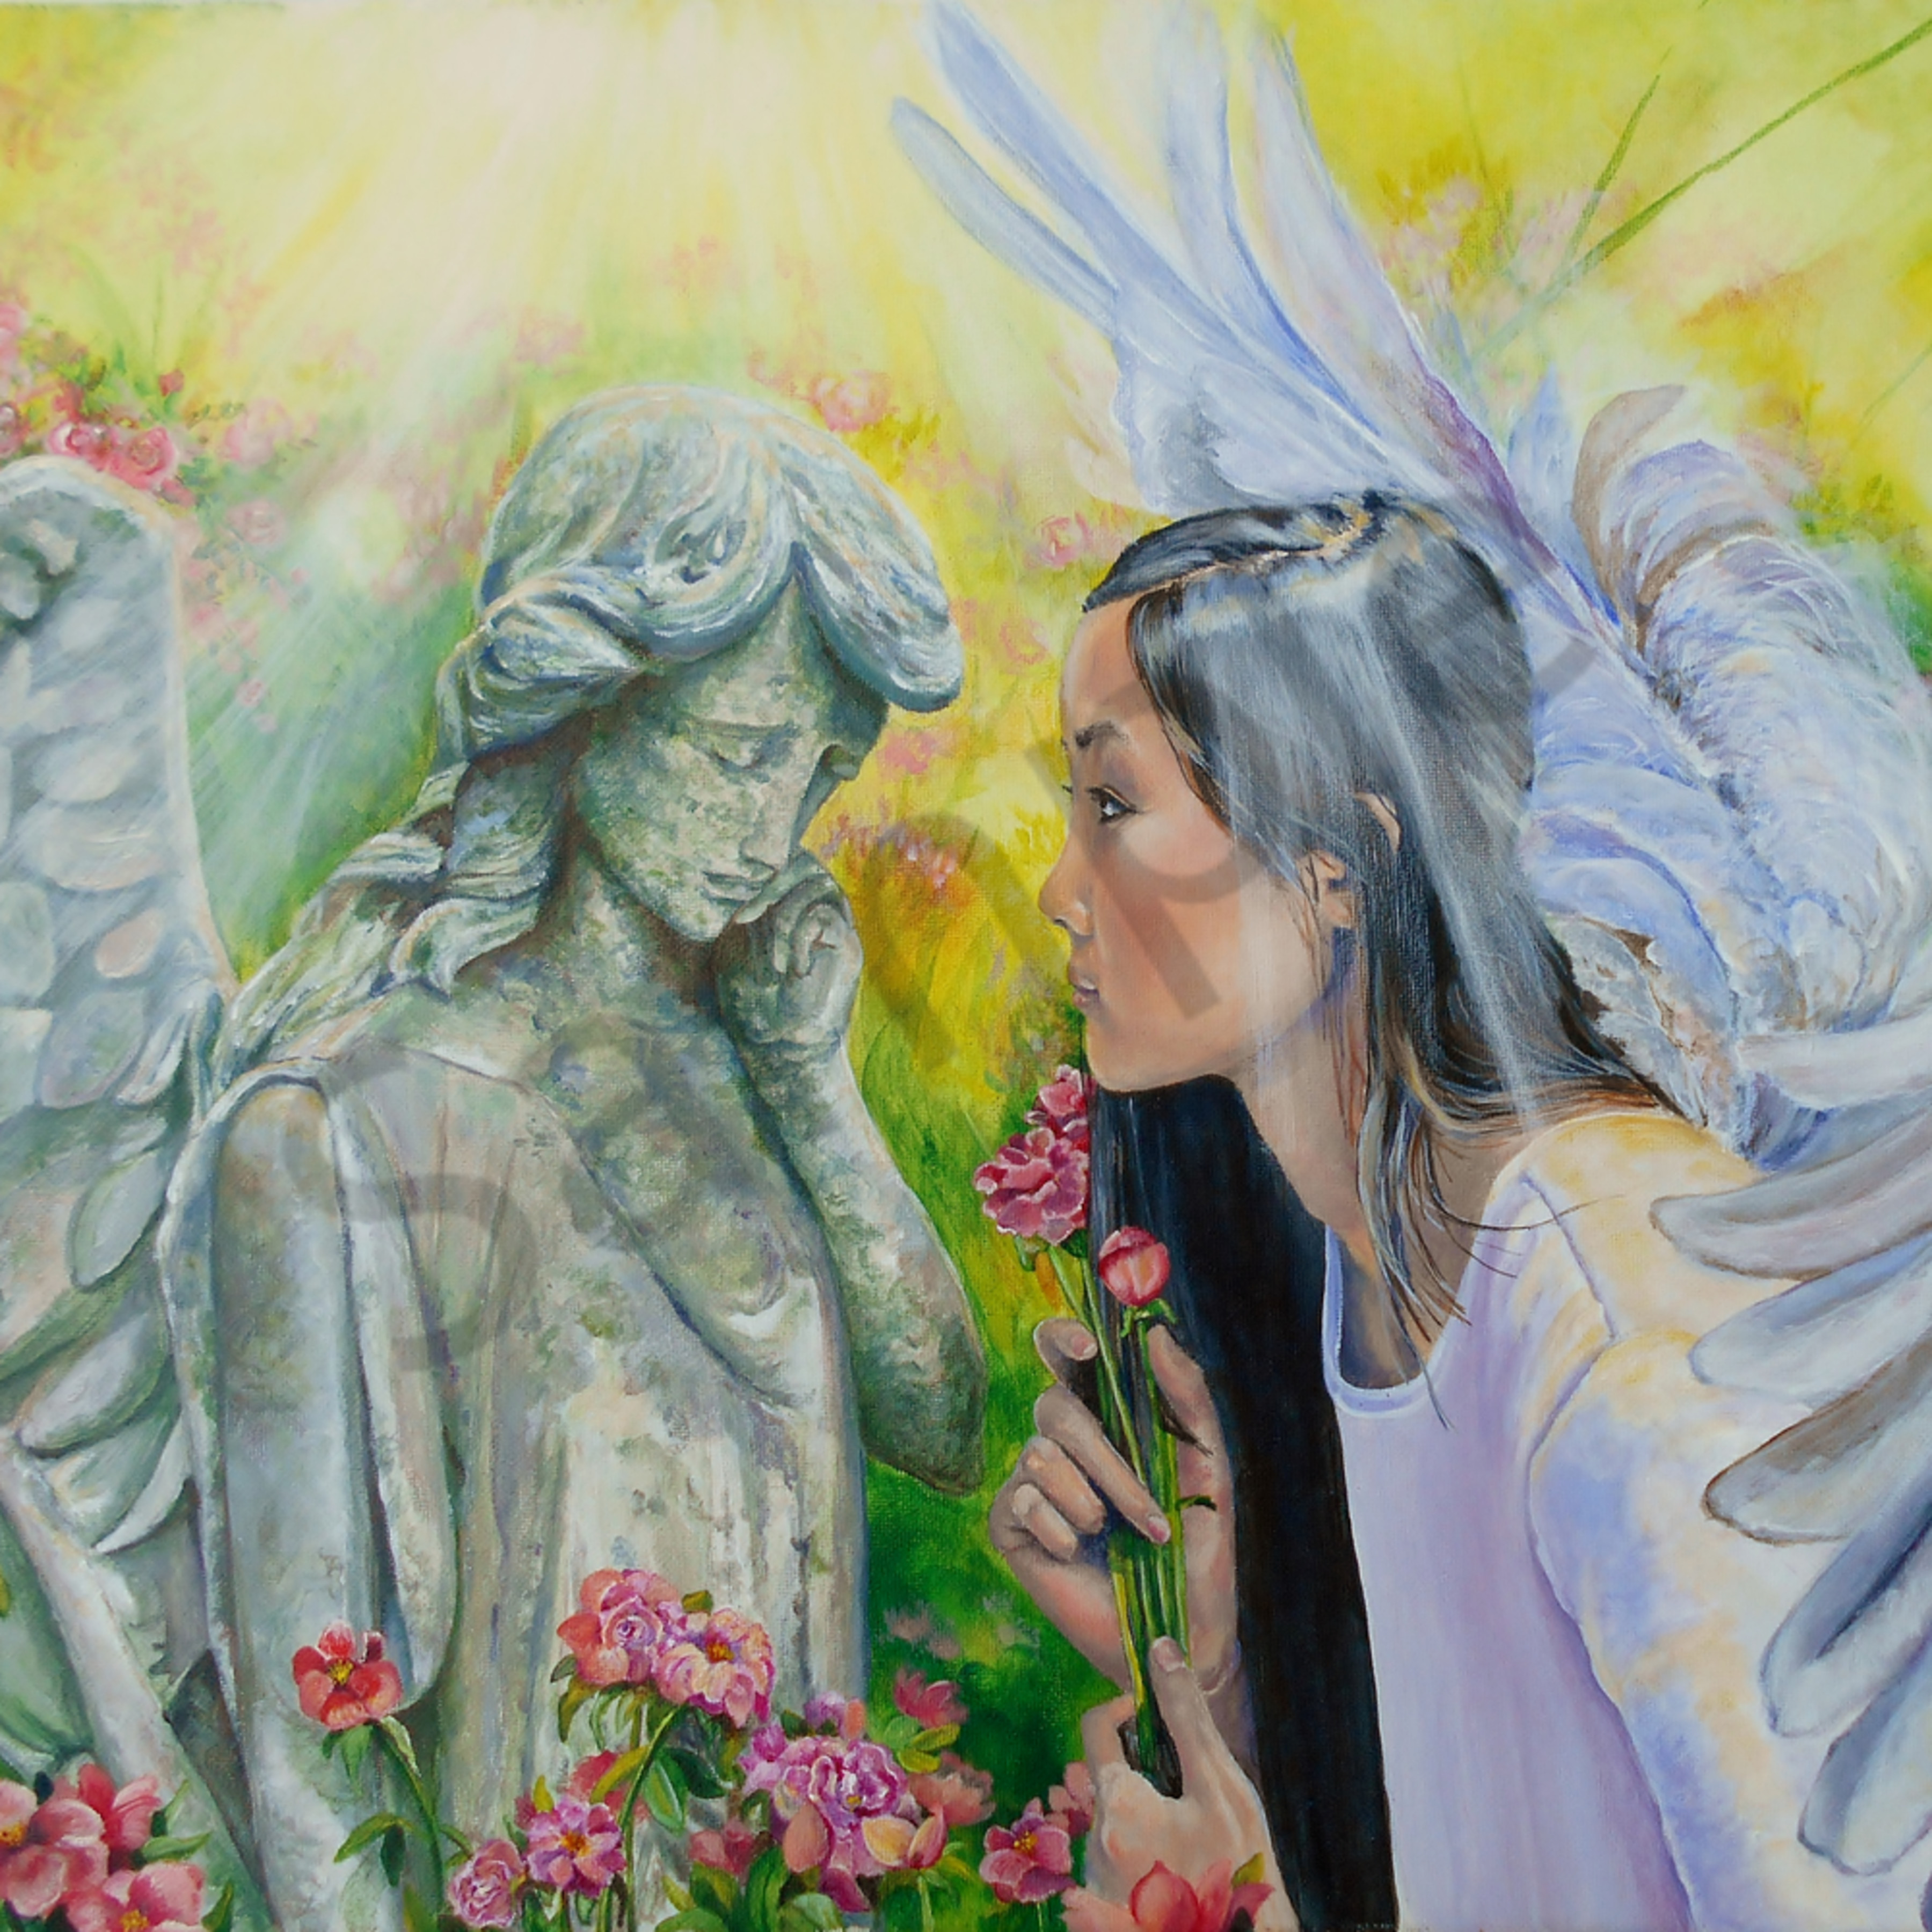 Angels and roses by gina harding zq4vxn